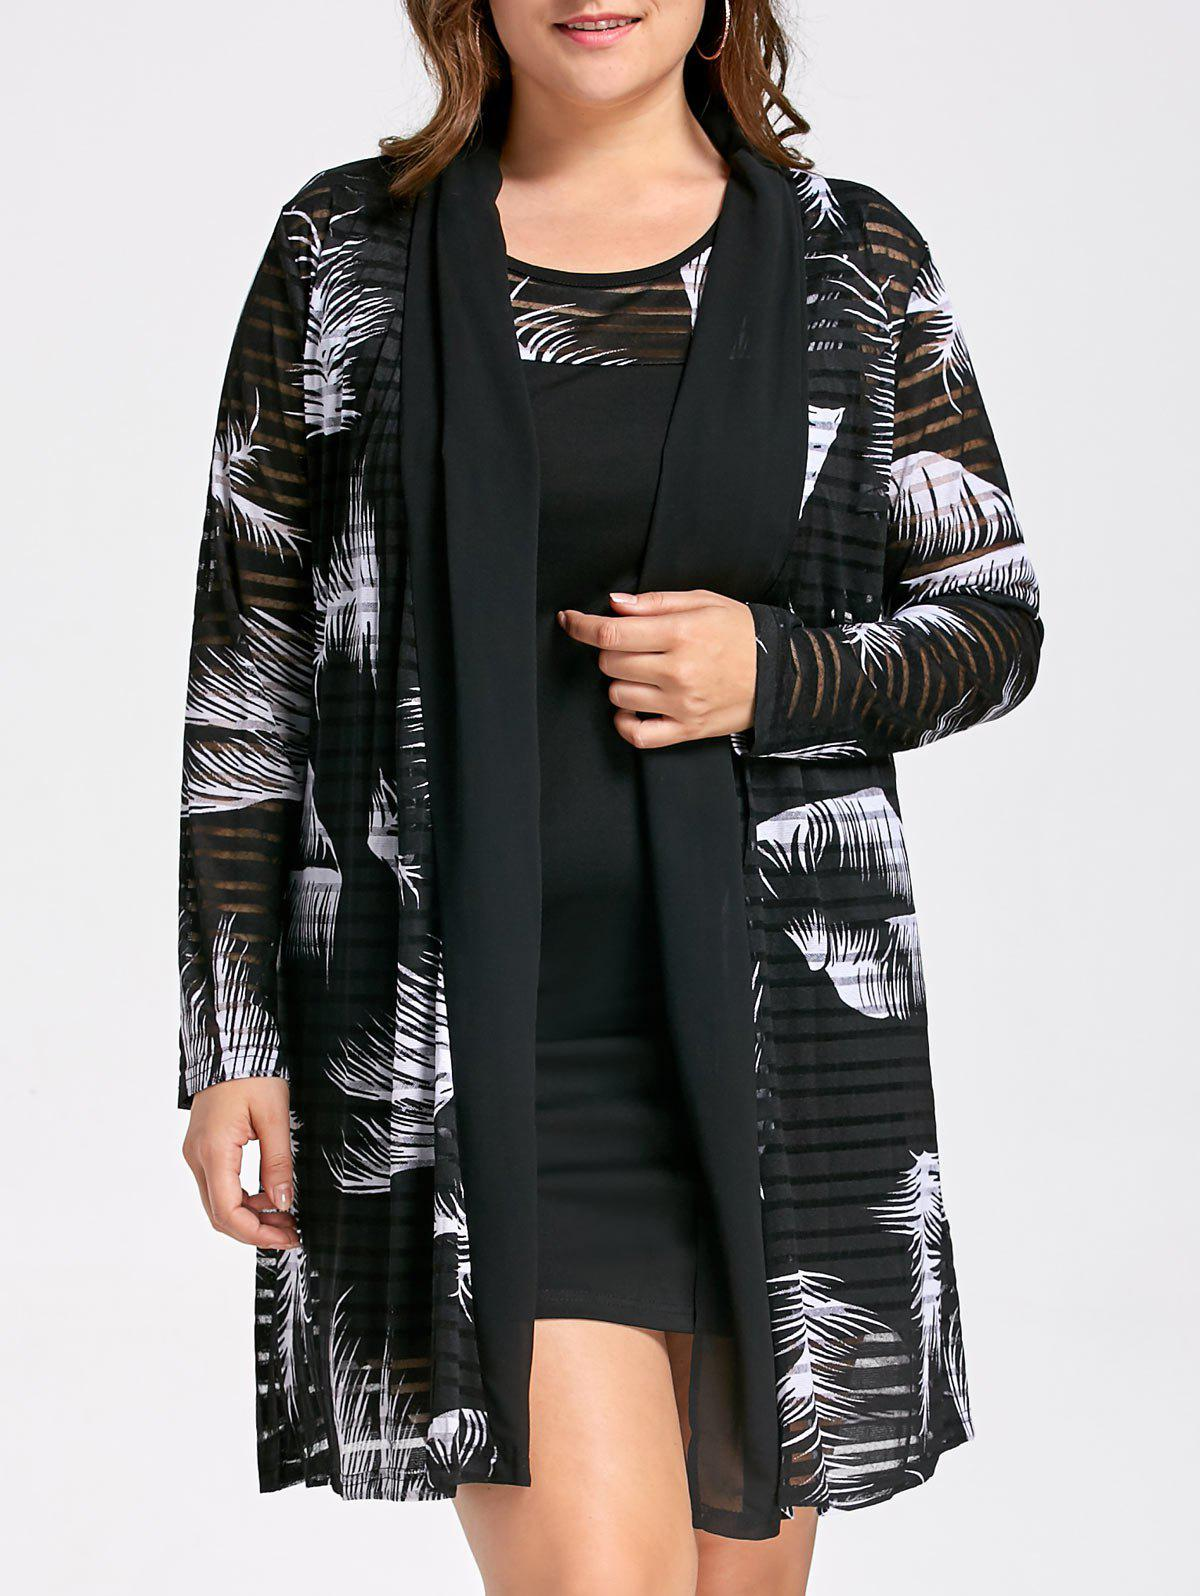 Plus Size Tank Dress with Long Mesh Sheer Cardigan plus size tank dress with long mesh sheer cardigan